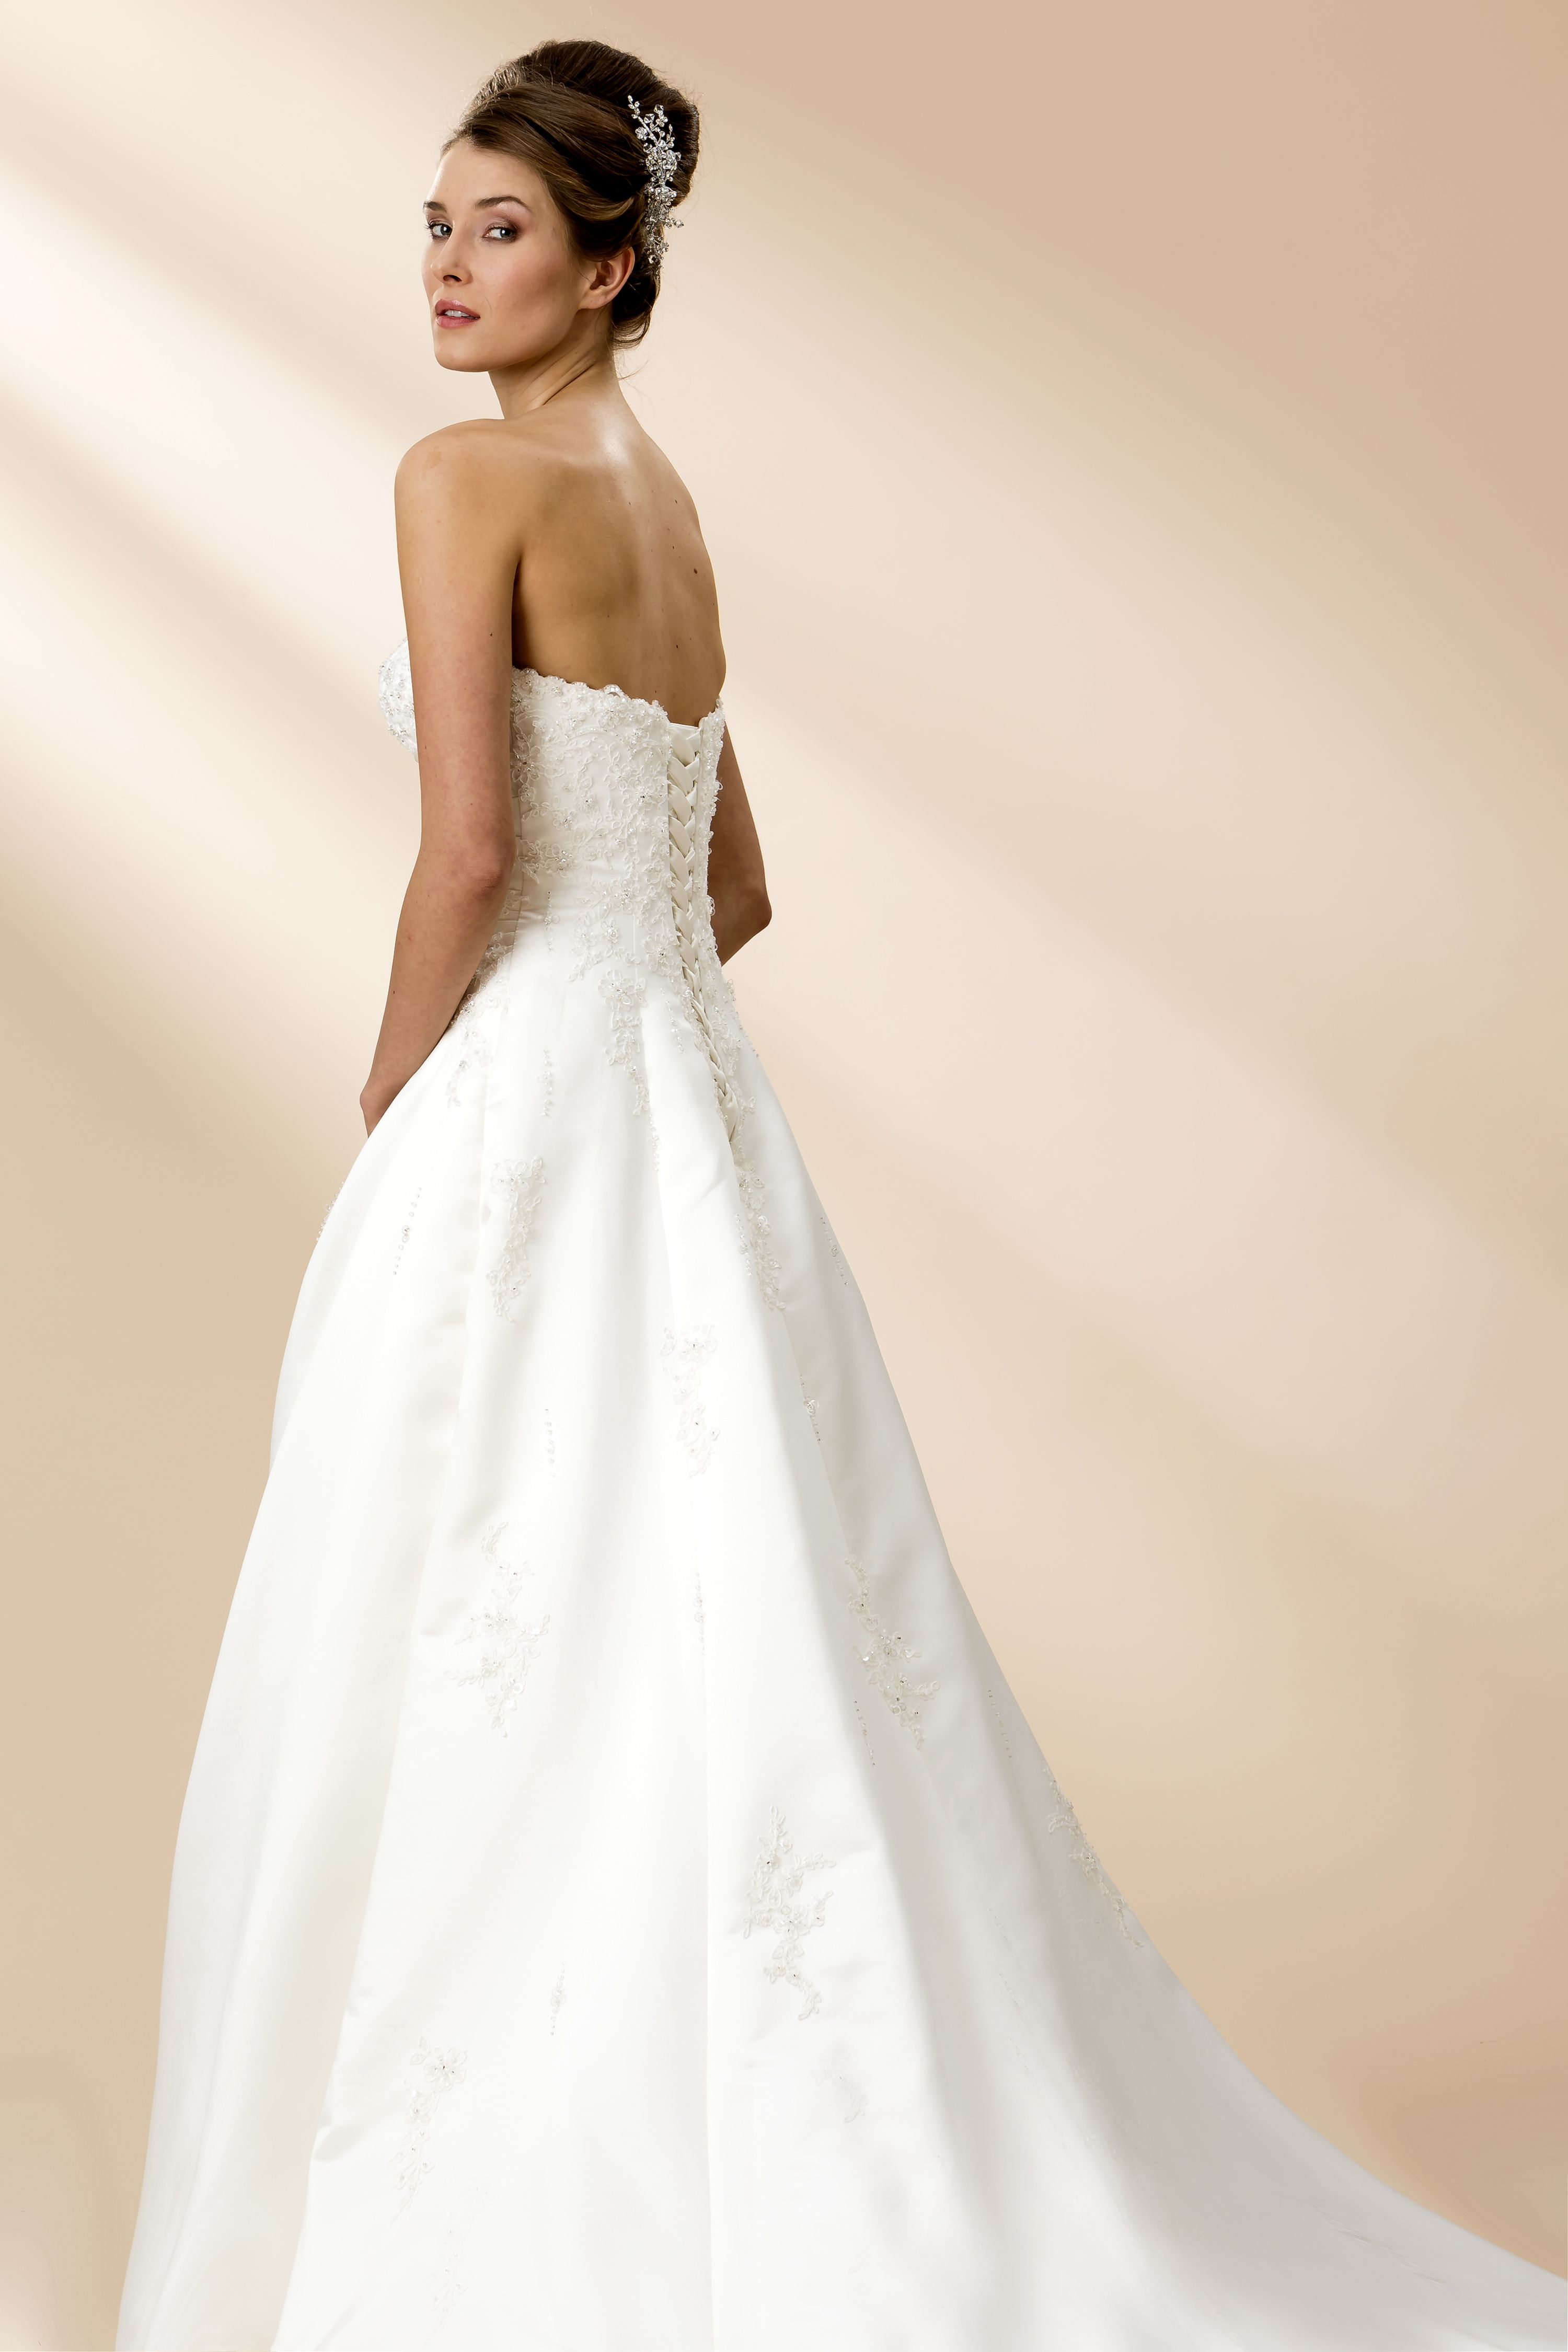 36++ Satin and lace a line wedding dress ideas in 2021